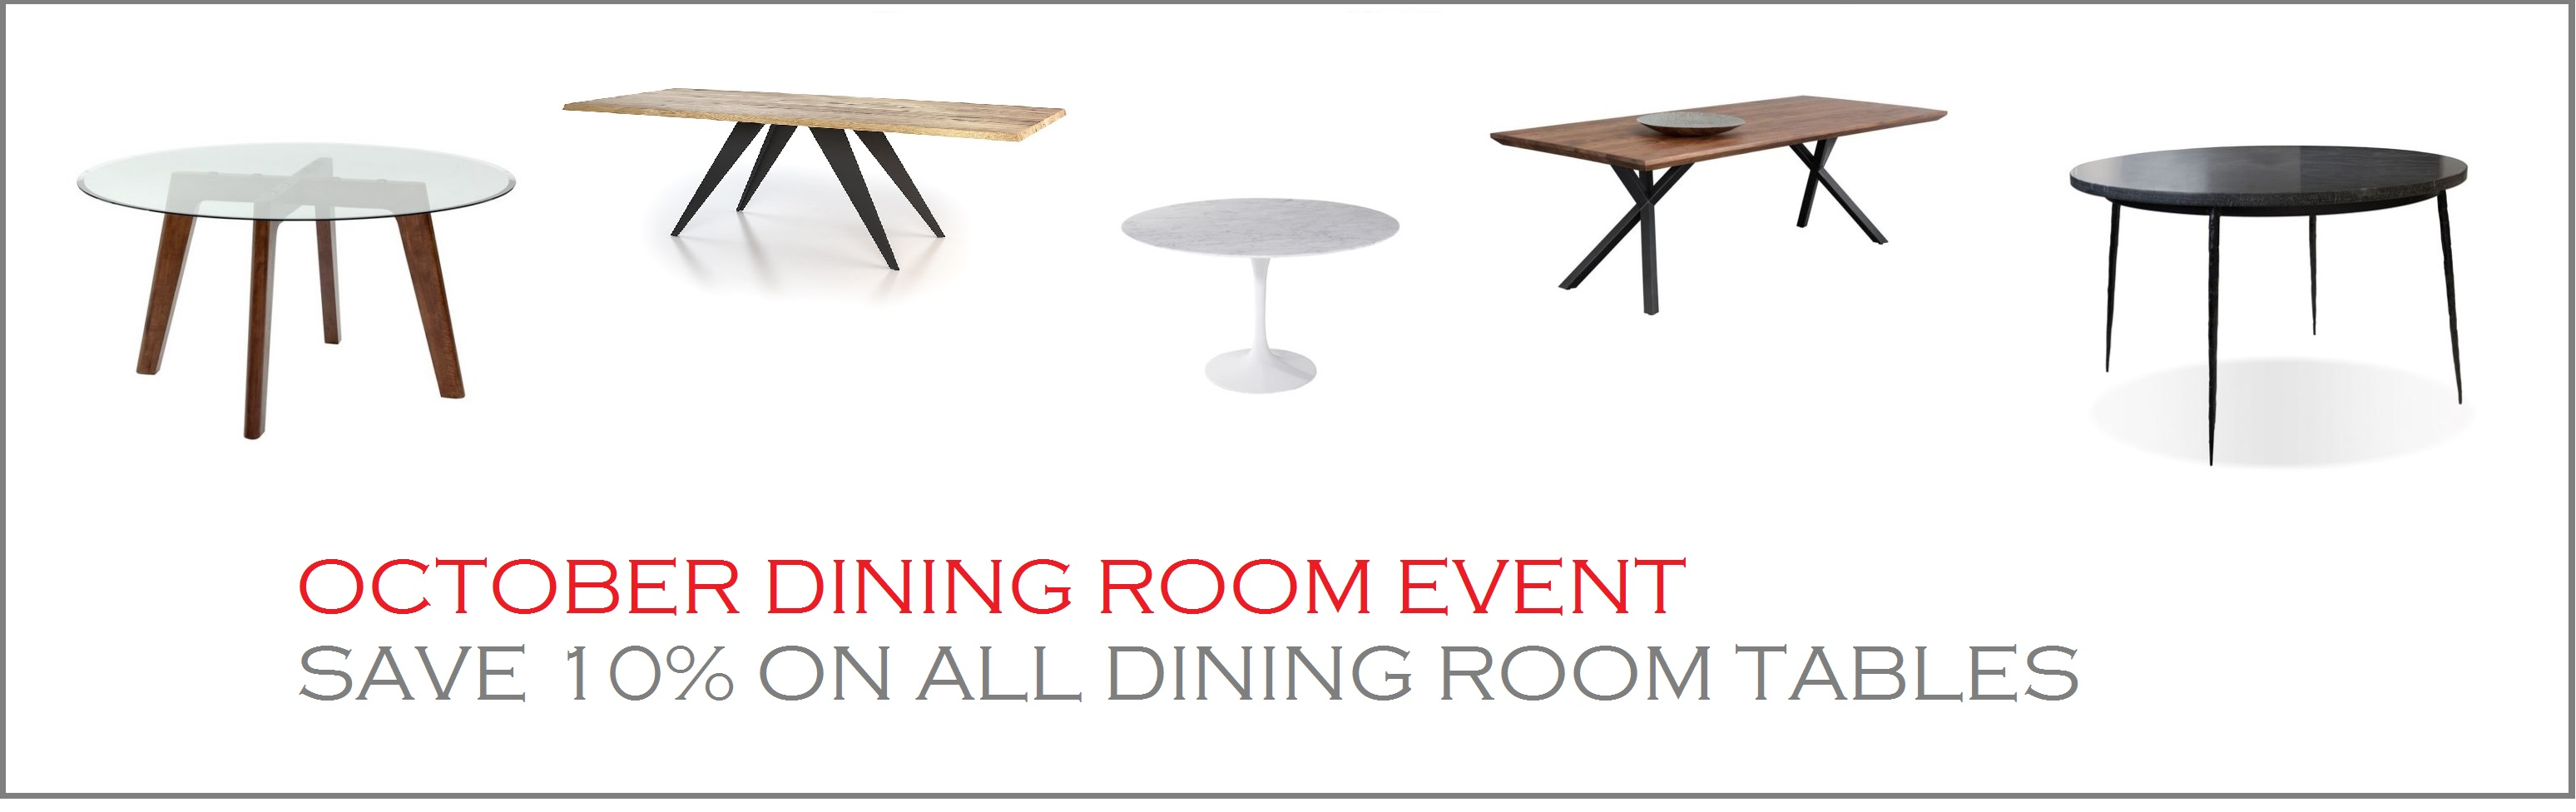 dining TABLE event OCTOBER_ENGLISH